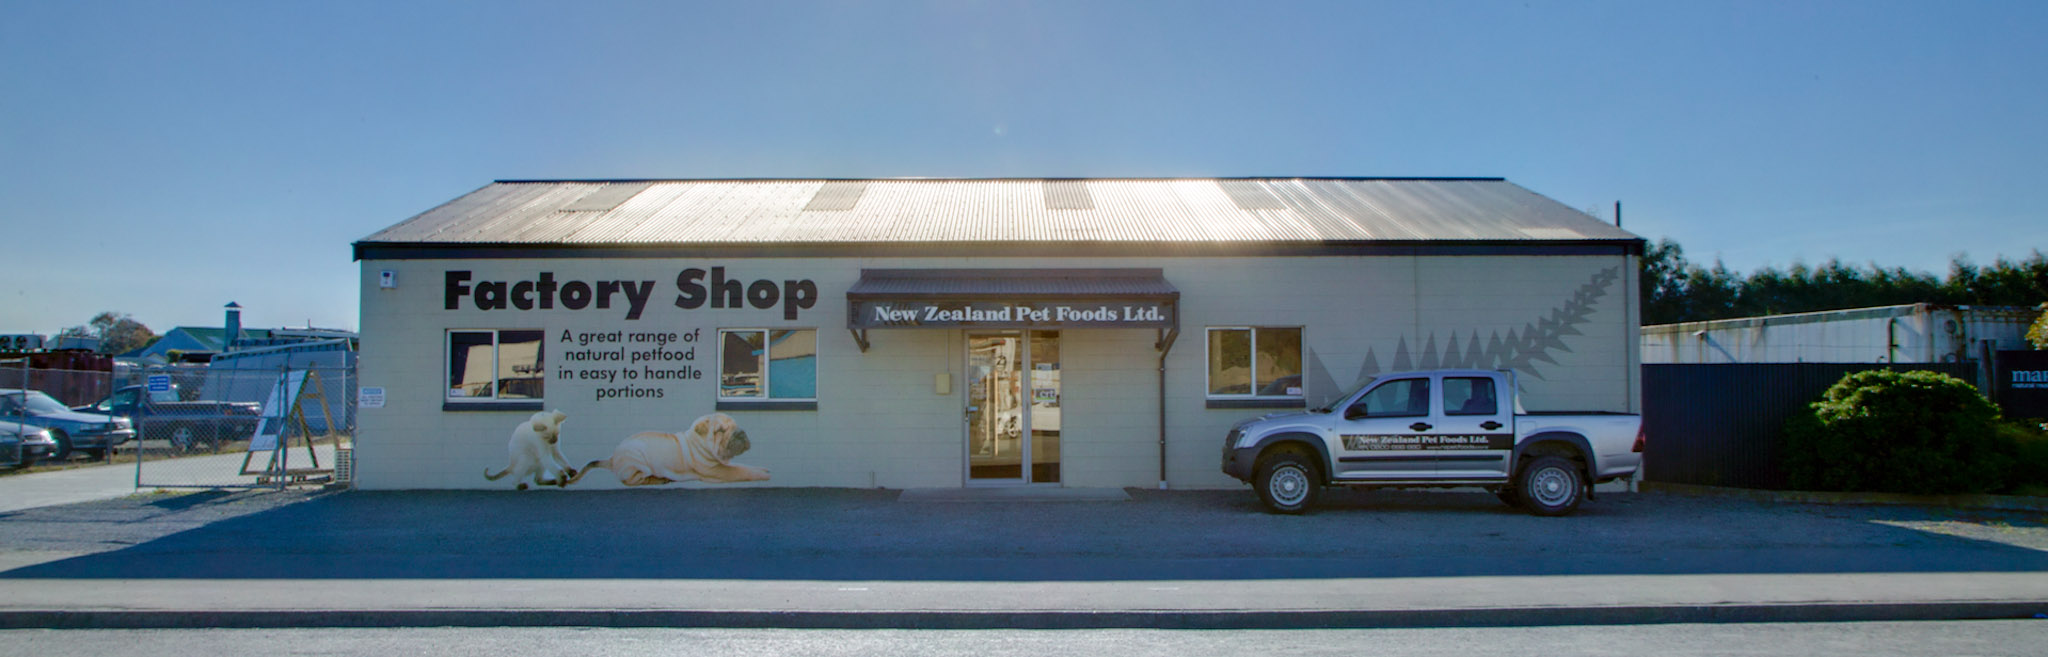 NZ Petfoods